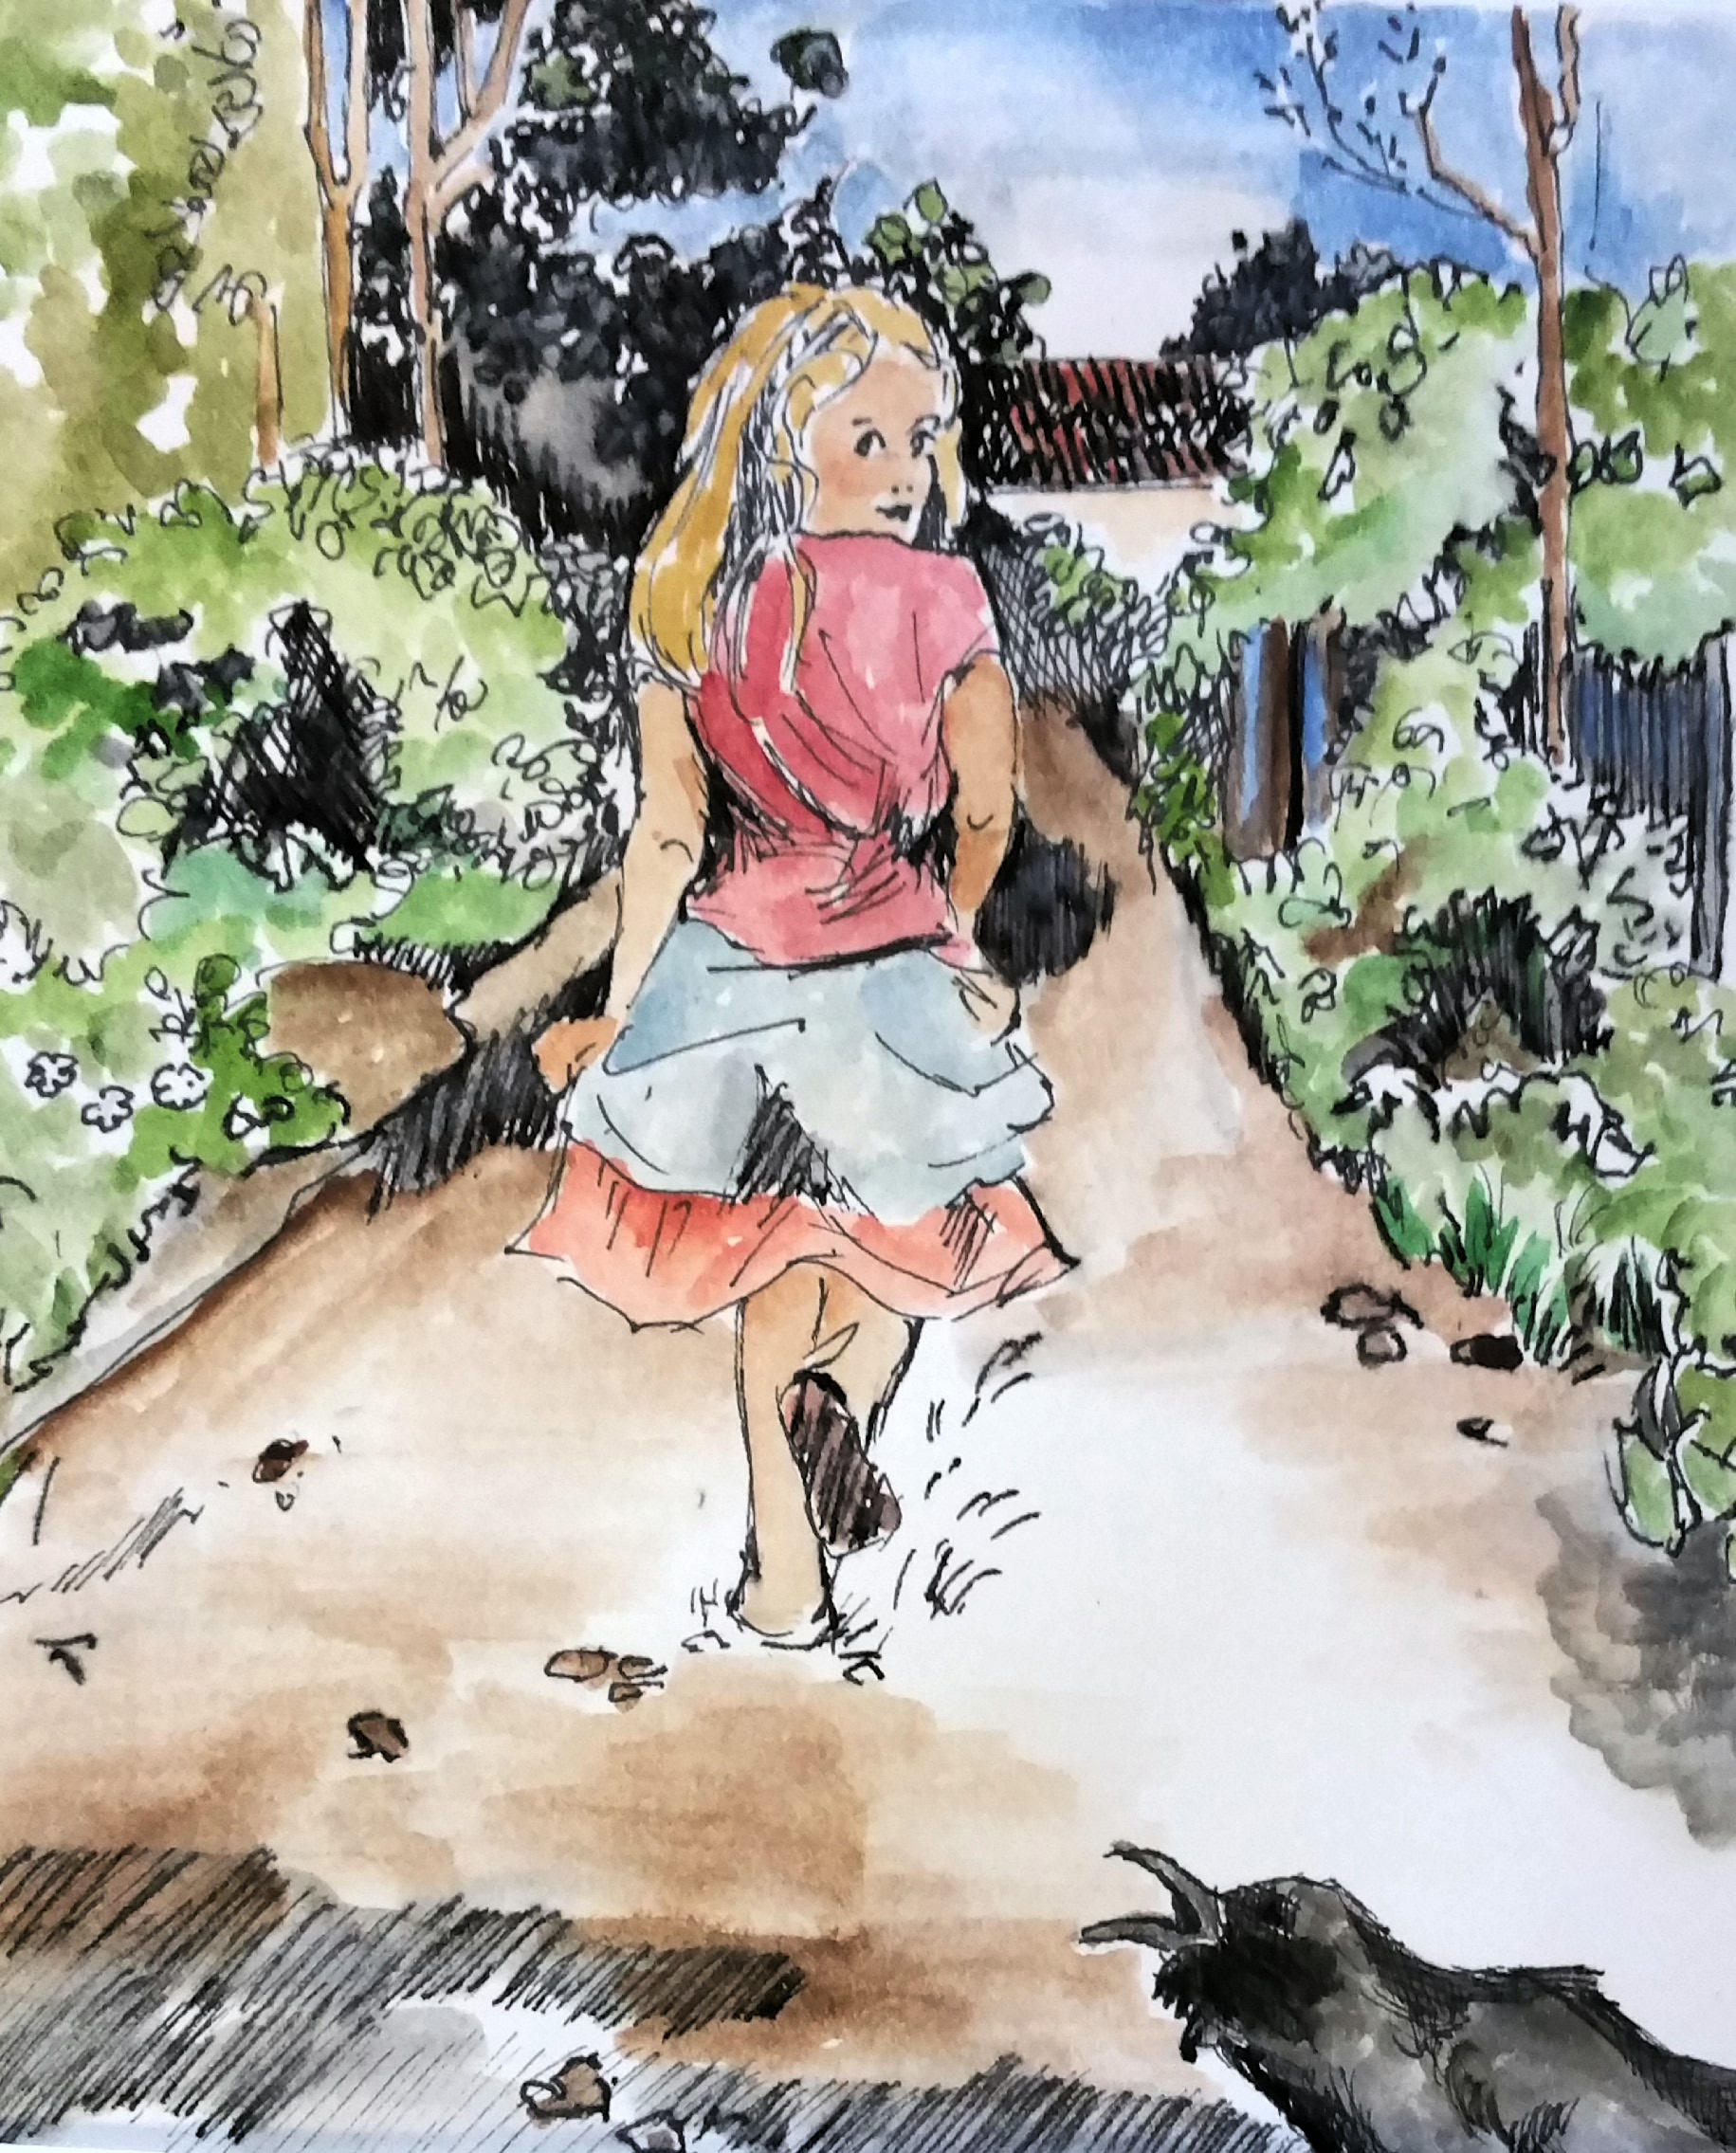 Drawing of a young girl looking behind her at a raven.